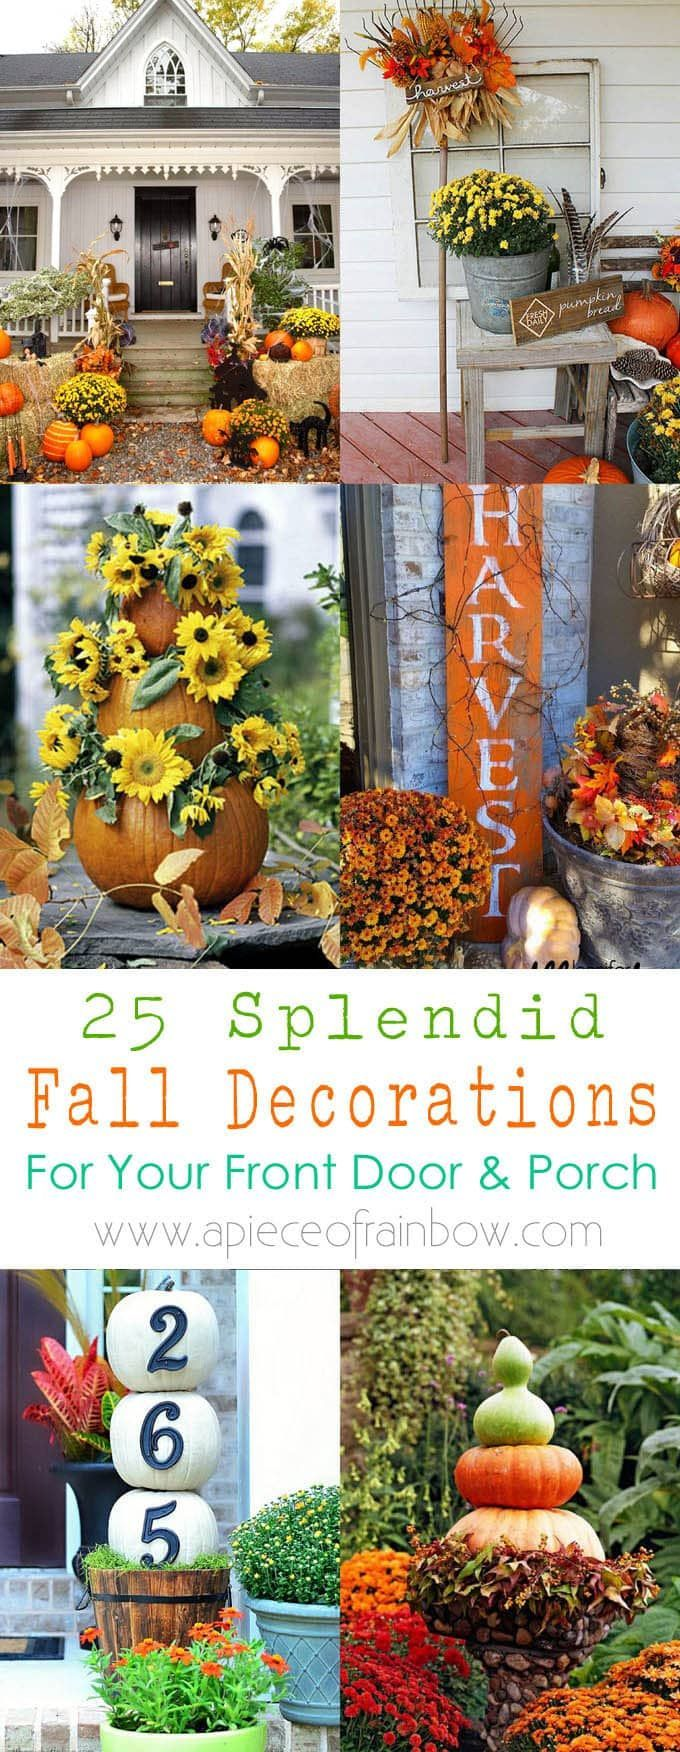 25 splendid DIY fall outdoor decorations for your front porch and door: super creative ideas using p...